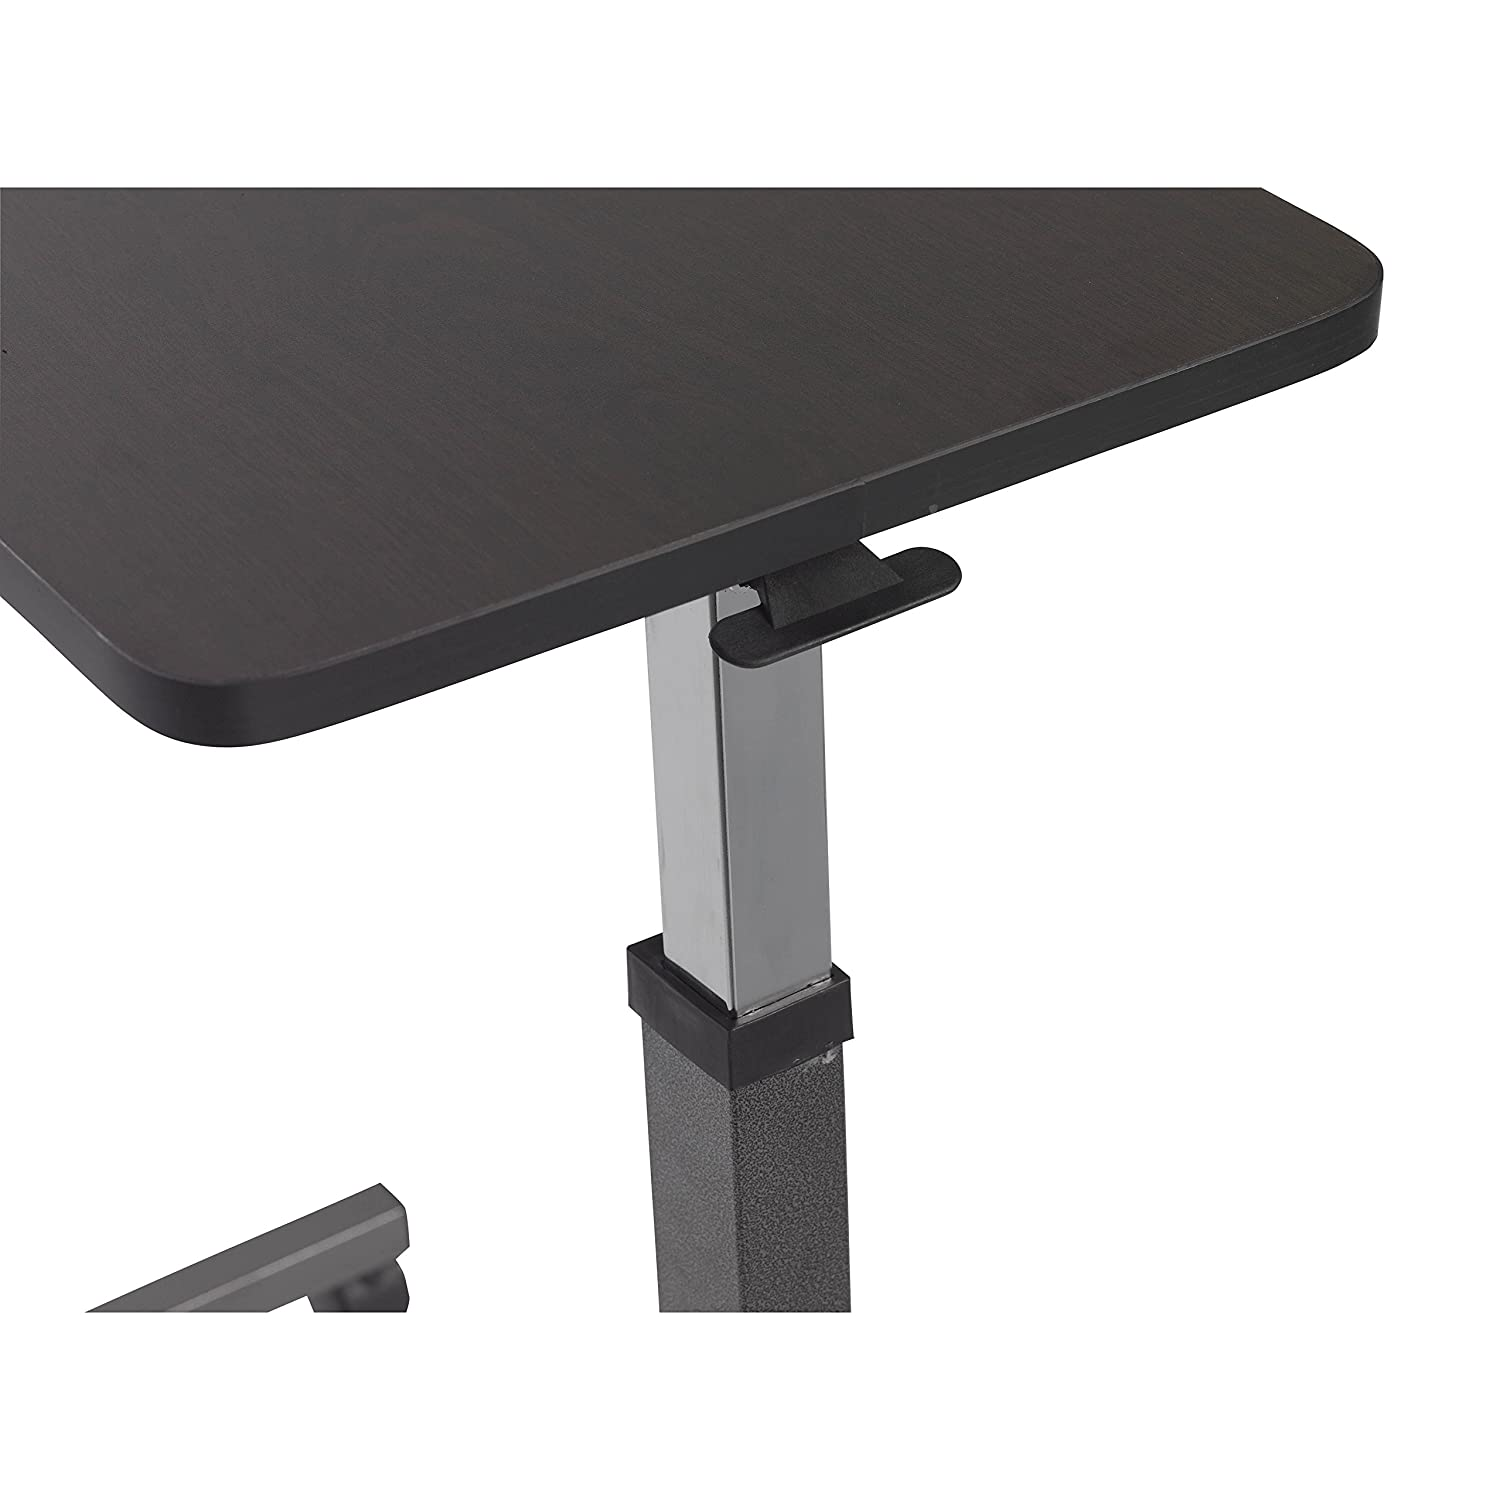 orig table product us c details styleview patient ergotron products overbed en videos